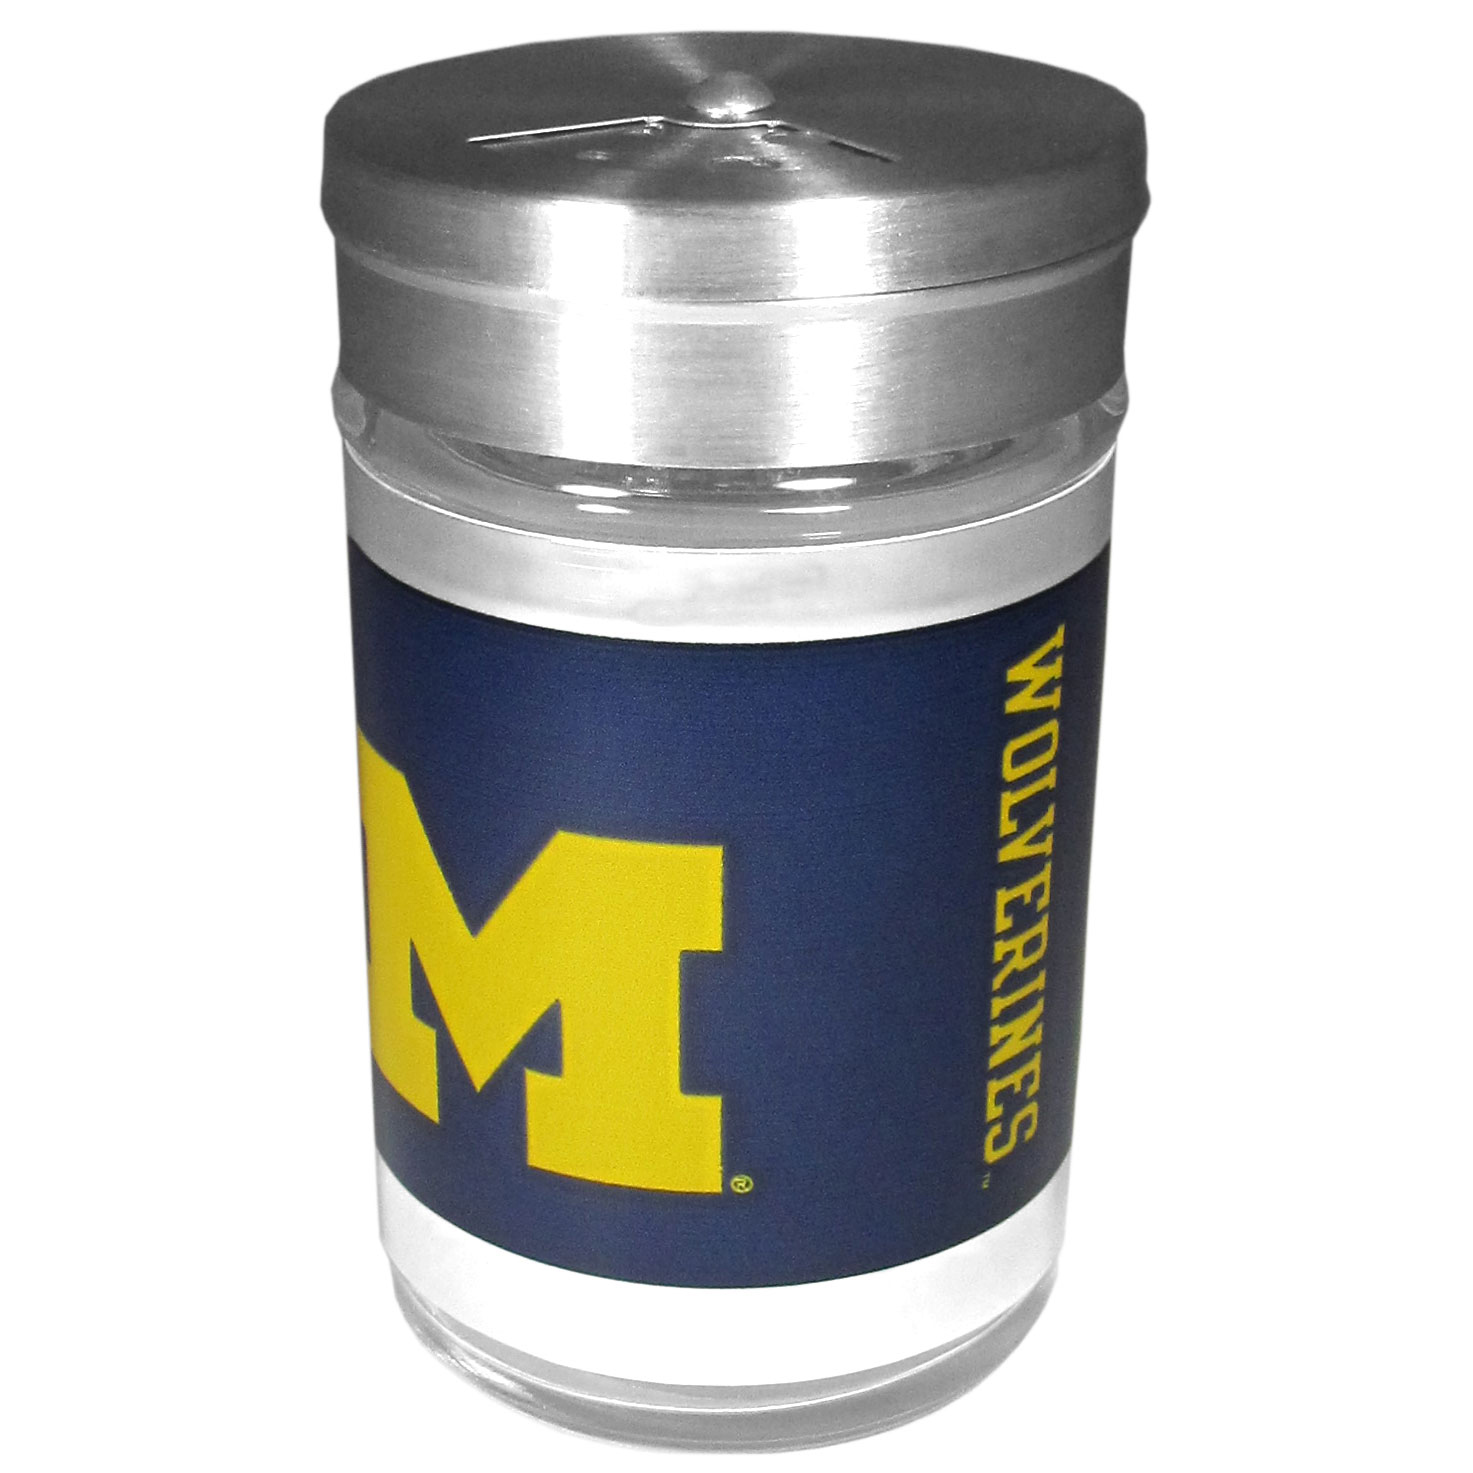 Michigan Wolverines Tailgater Season Shakers - Spice it up with our Michigan Wolverines tailgater season shakers! This compact shaker is 2 inch tall with a twist top that closes off the holes at the top making it perfect for travel preventing those messy spills. The shaker has wide holes perfect for keeping your pepper seeds or cheese toppings. The bright team graphics will make you the envy of the other fans while you are grilling up your tailgating goodies.